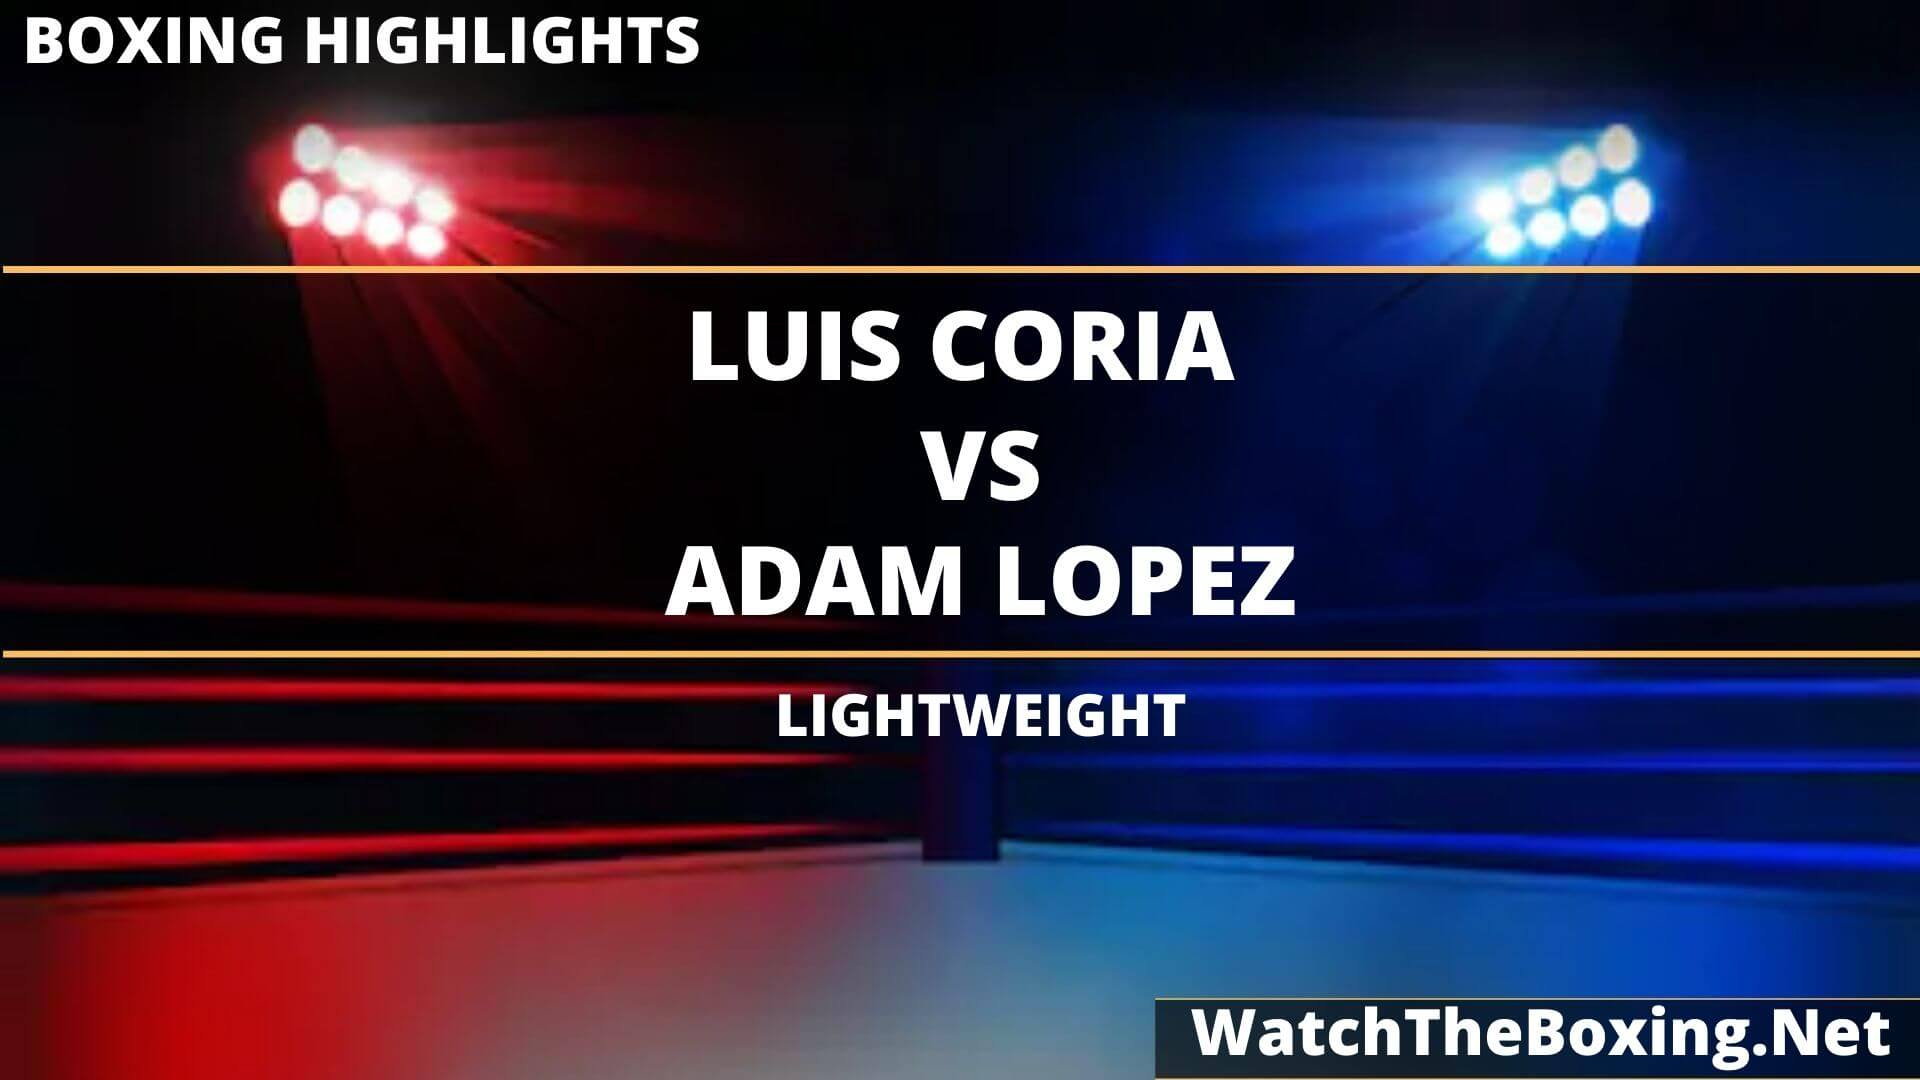 Luis Coria Vs Adam Lopez Highlights 2020 Lightweight